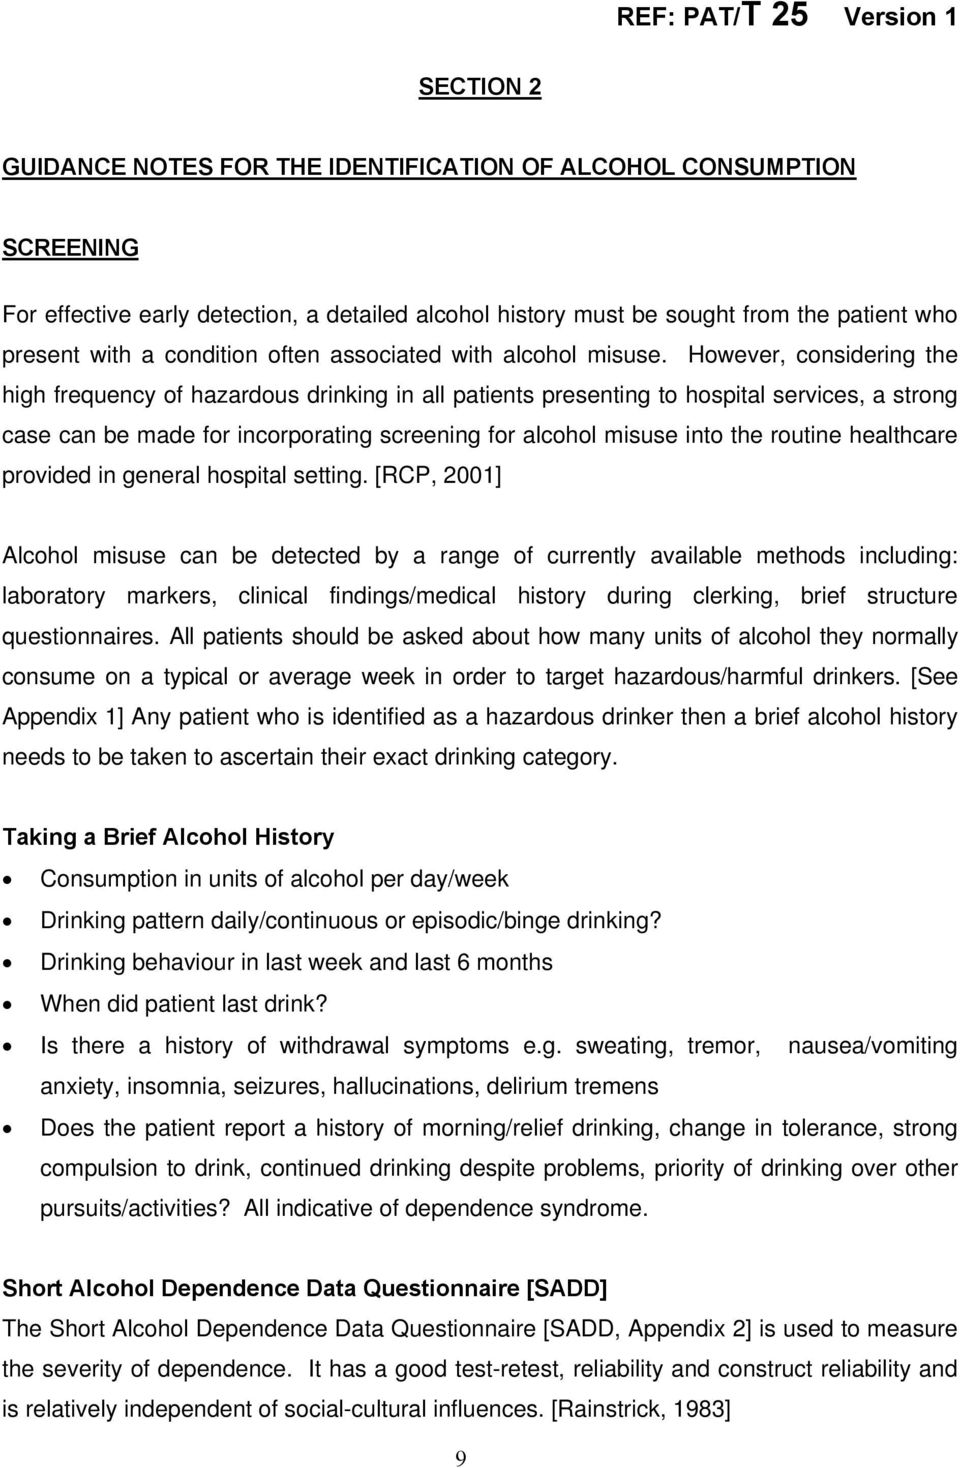 However, considering the high frequency of hazardous drinking in all patients presenting to hospital services, a strong case can be made for incorporating screening for alcohol misuse into the